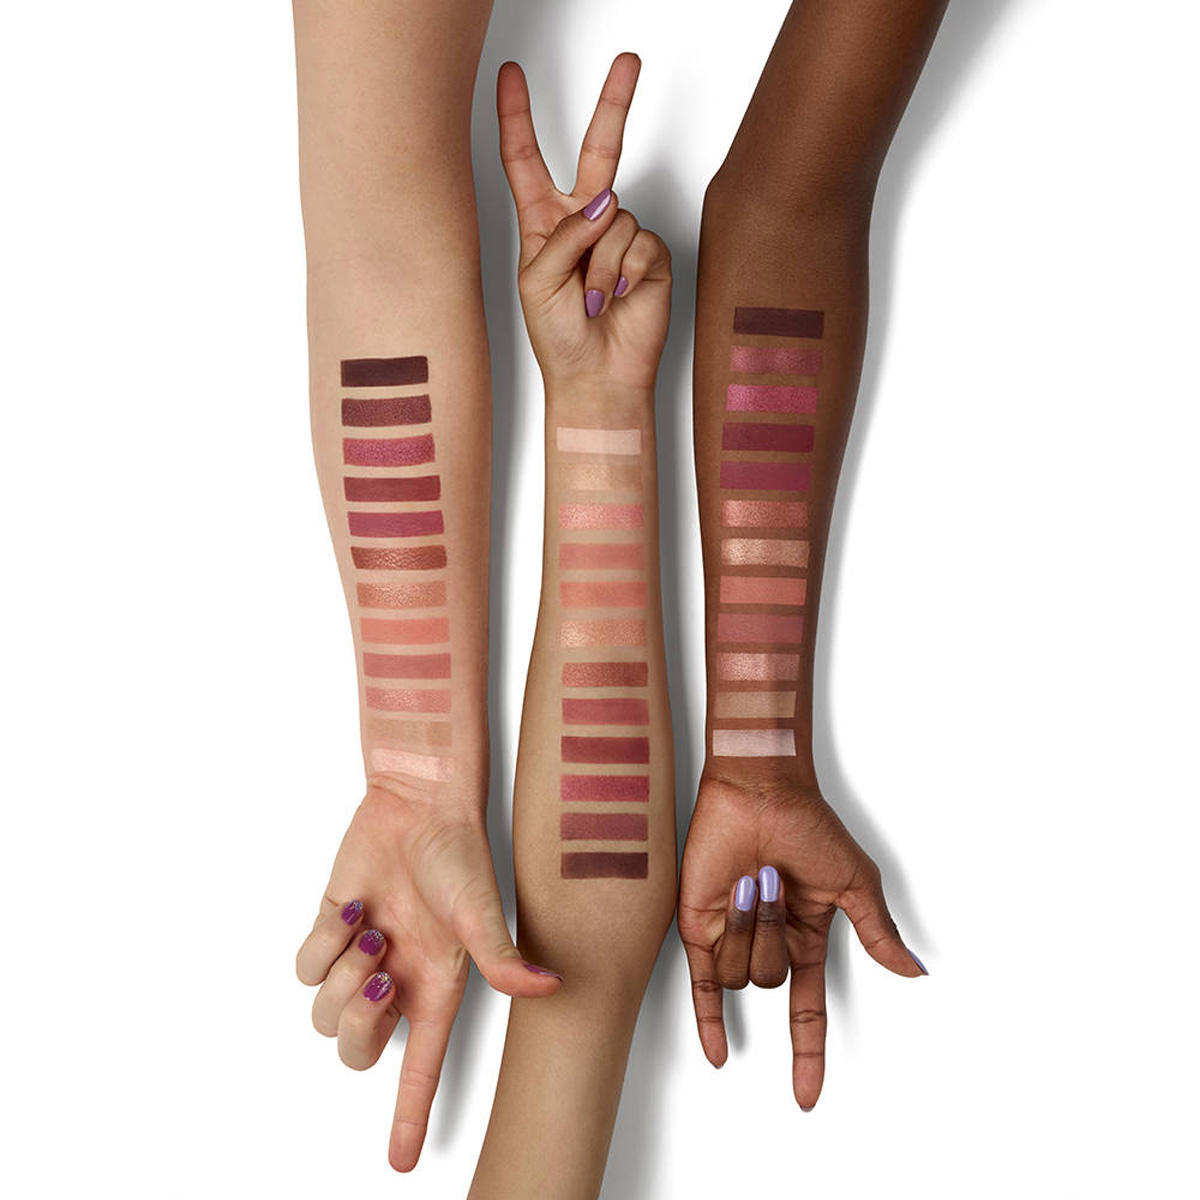 urban-decay-naked-cherry-eyeshadow-palette-swatches